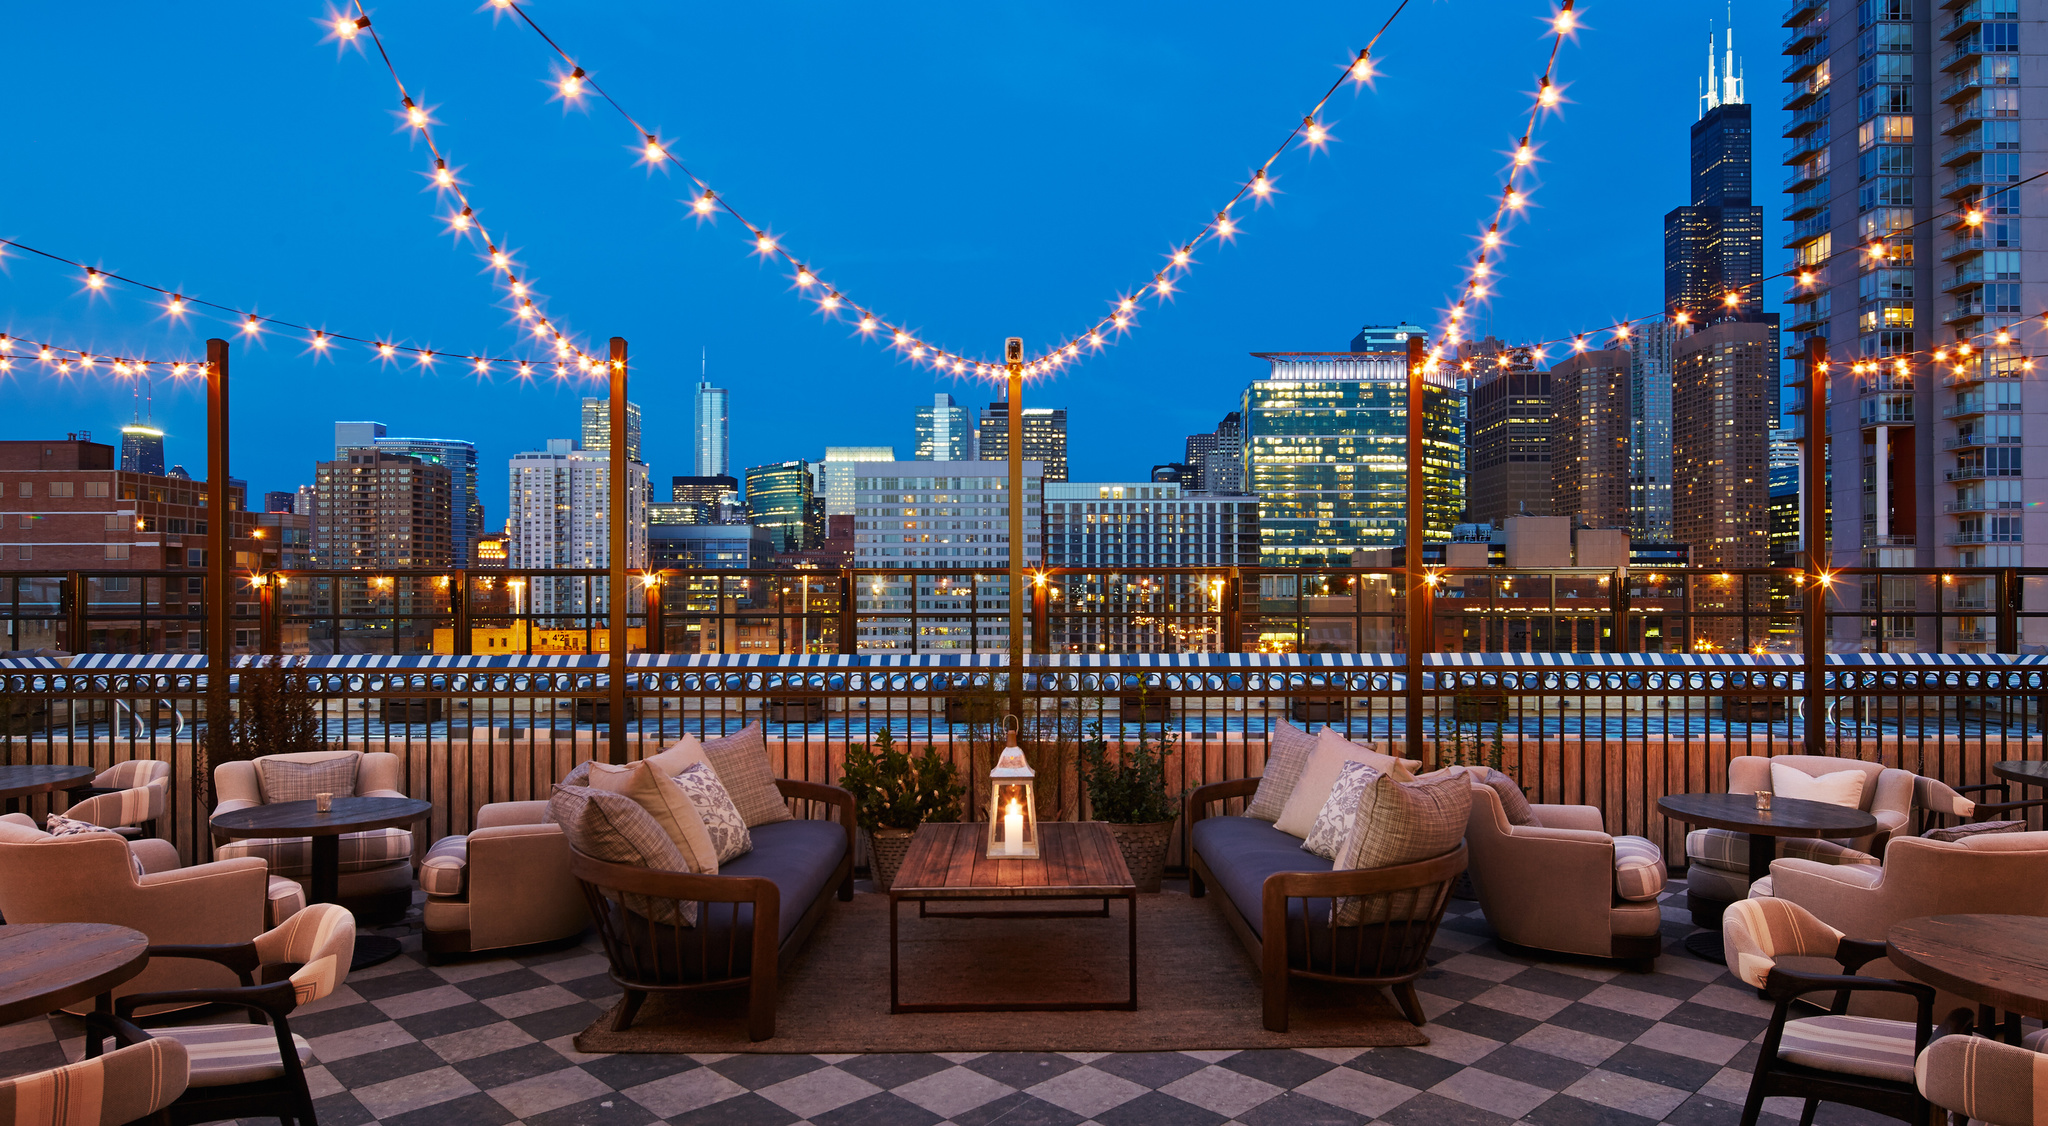 LED Bistro Patio Lights on building top